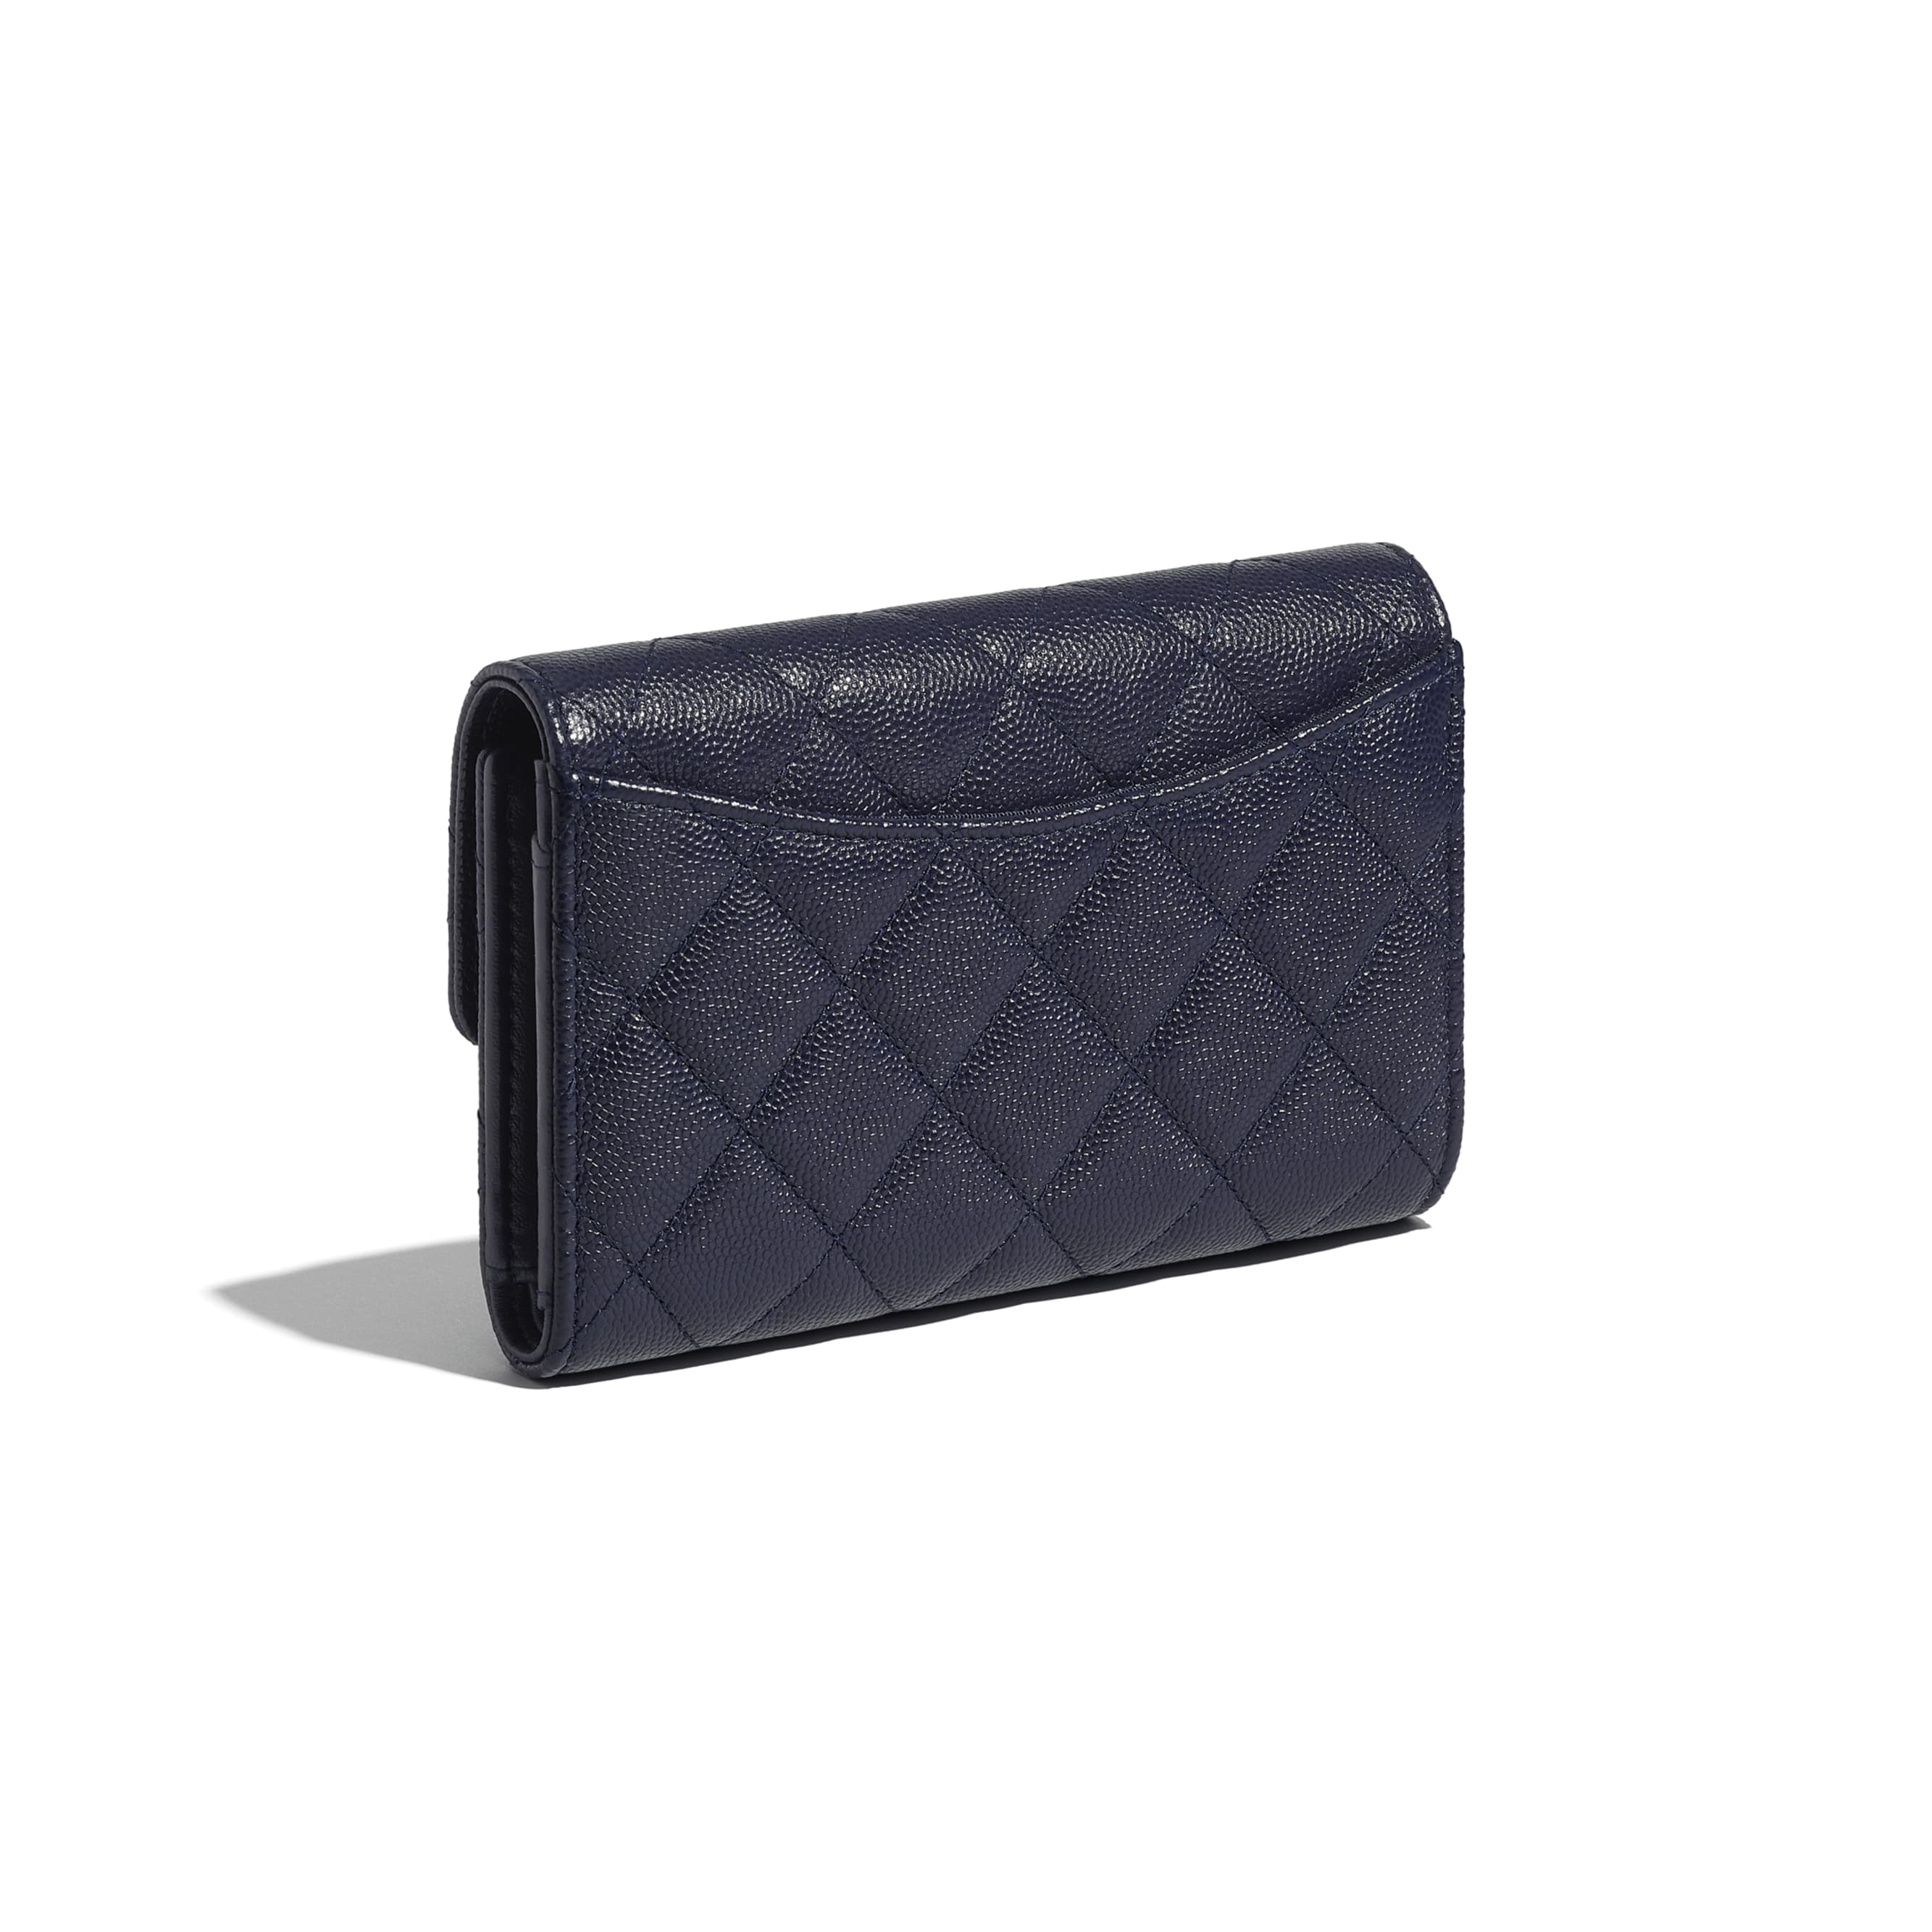 Classic Flap Wallet - Navy Blue - Grained Calfskin & Gold-Tone Metal - CHANEL - Extra view - see standard sized version